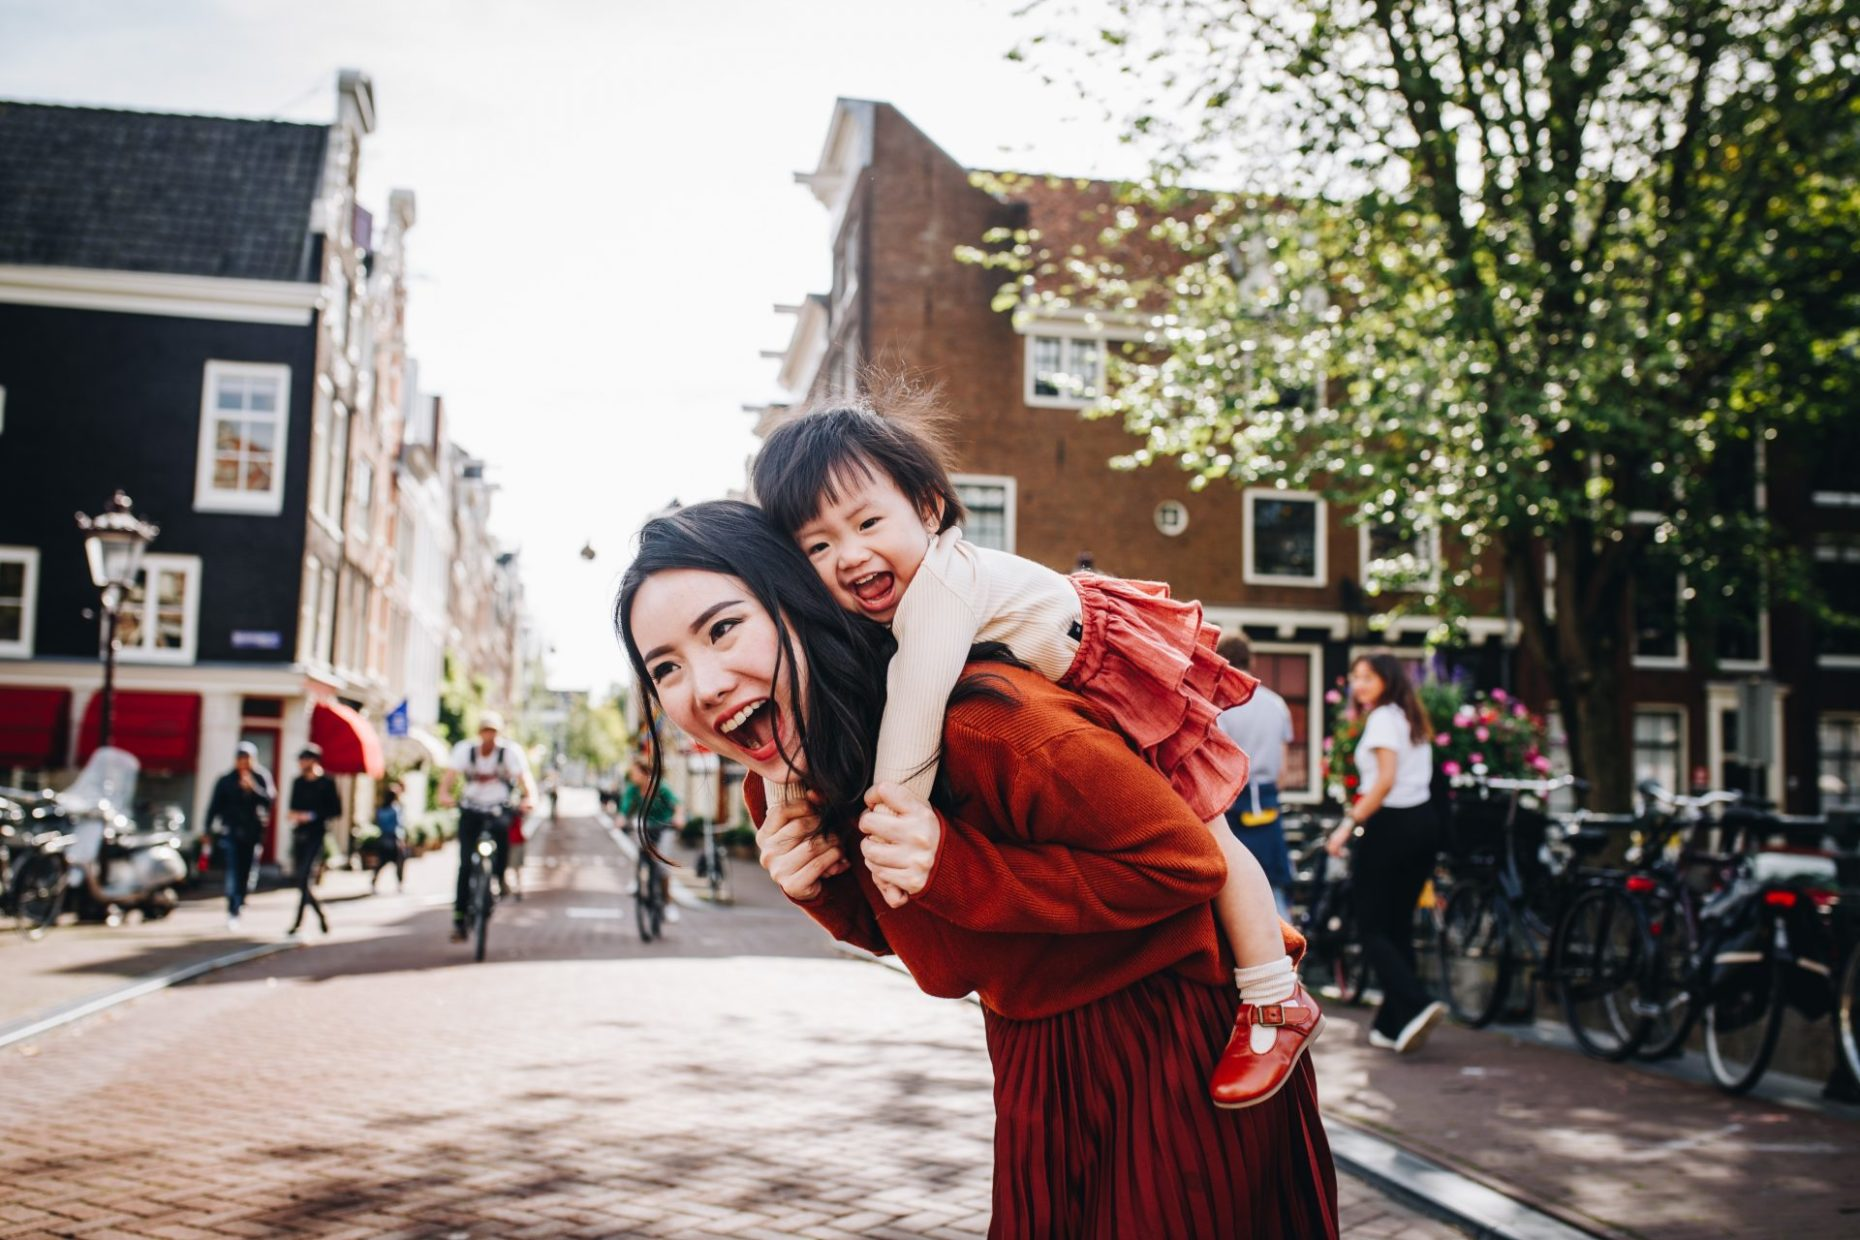 mom and her child on her back, playing on the streets of Amsterdam on a Saturday morning